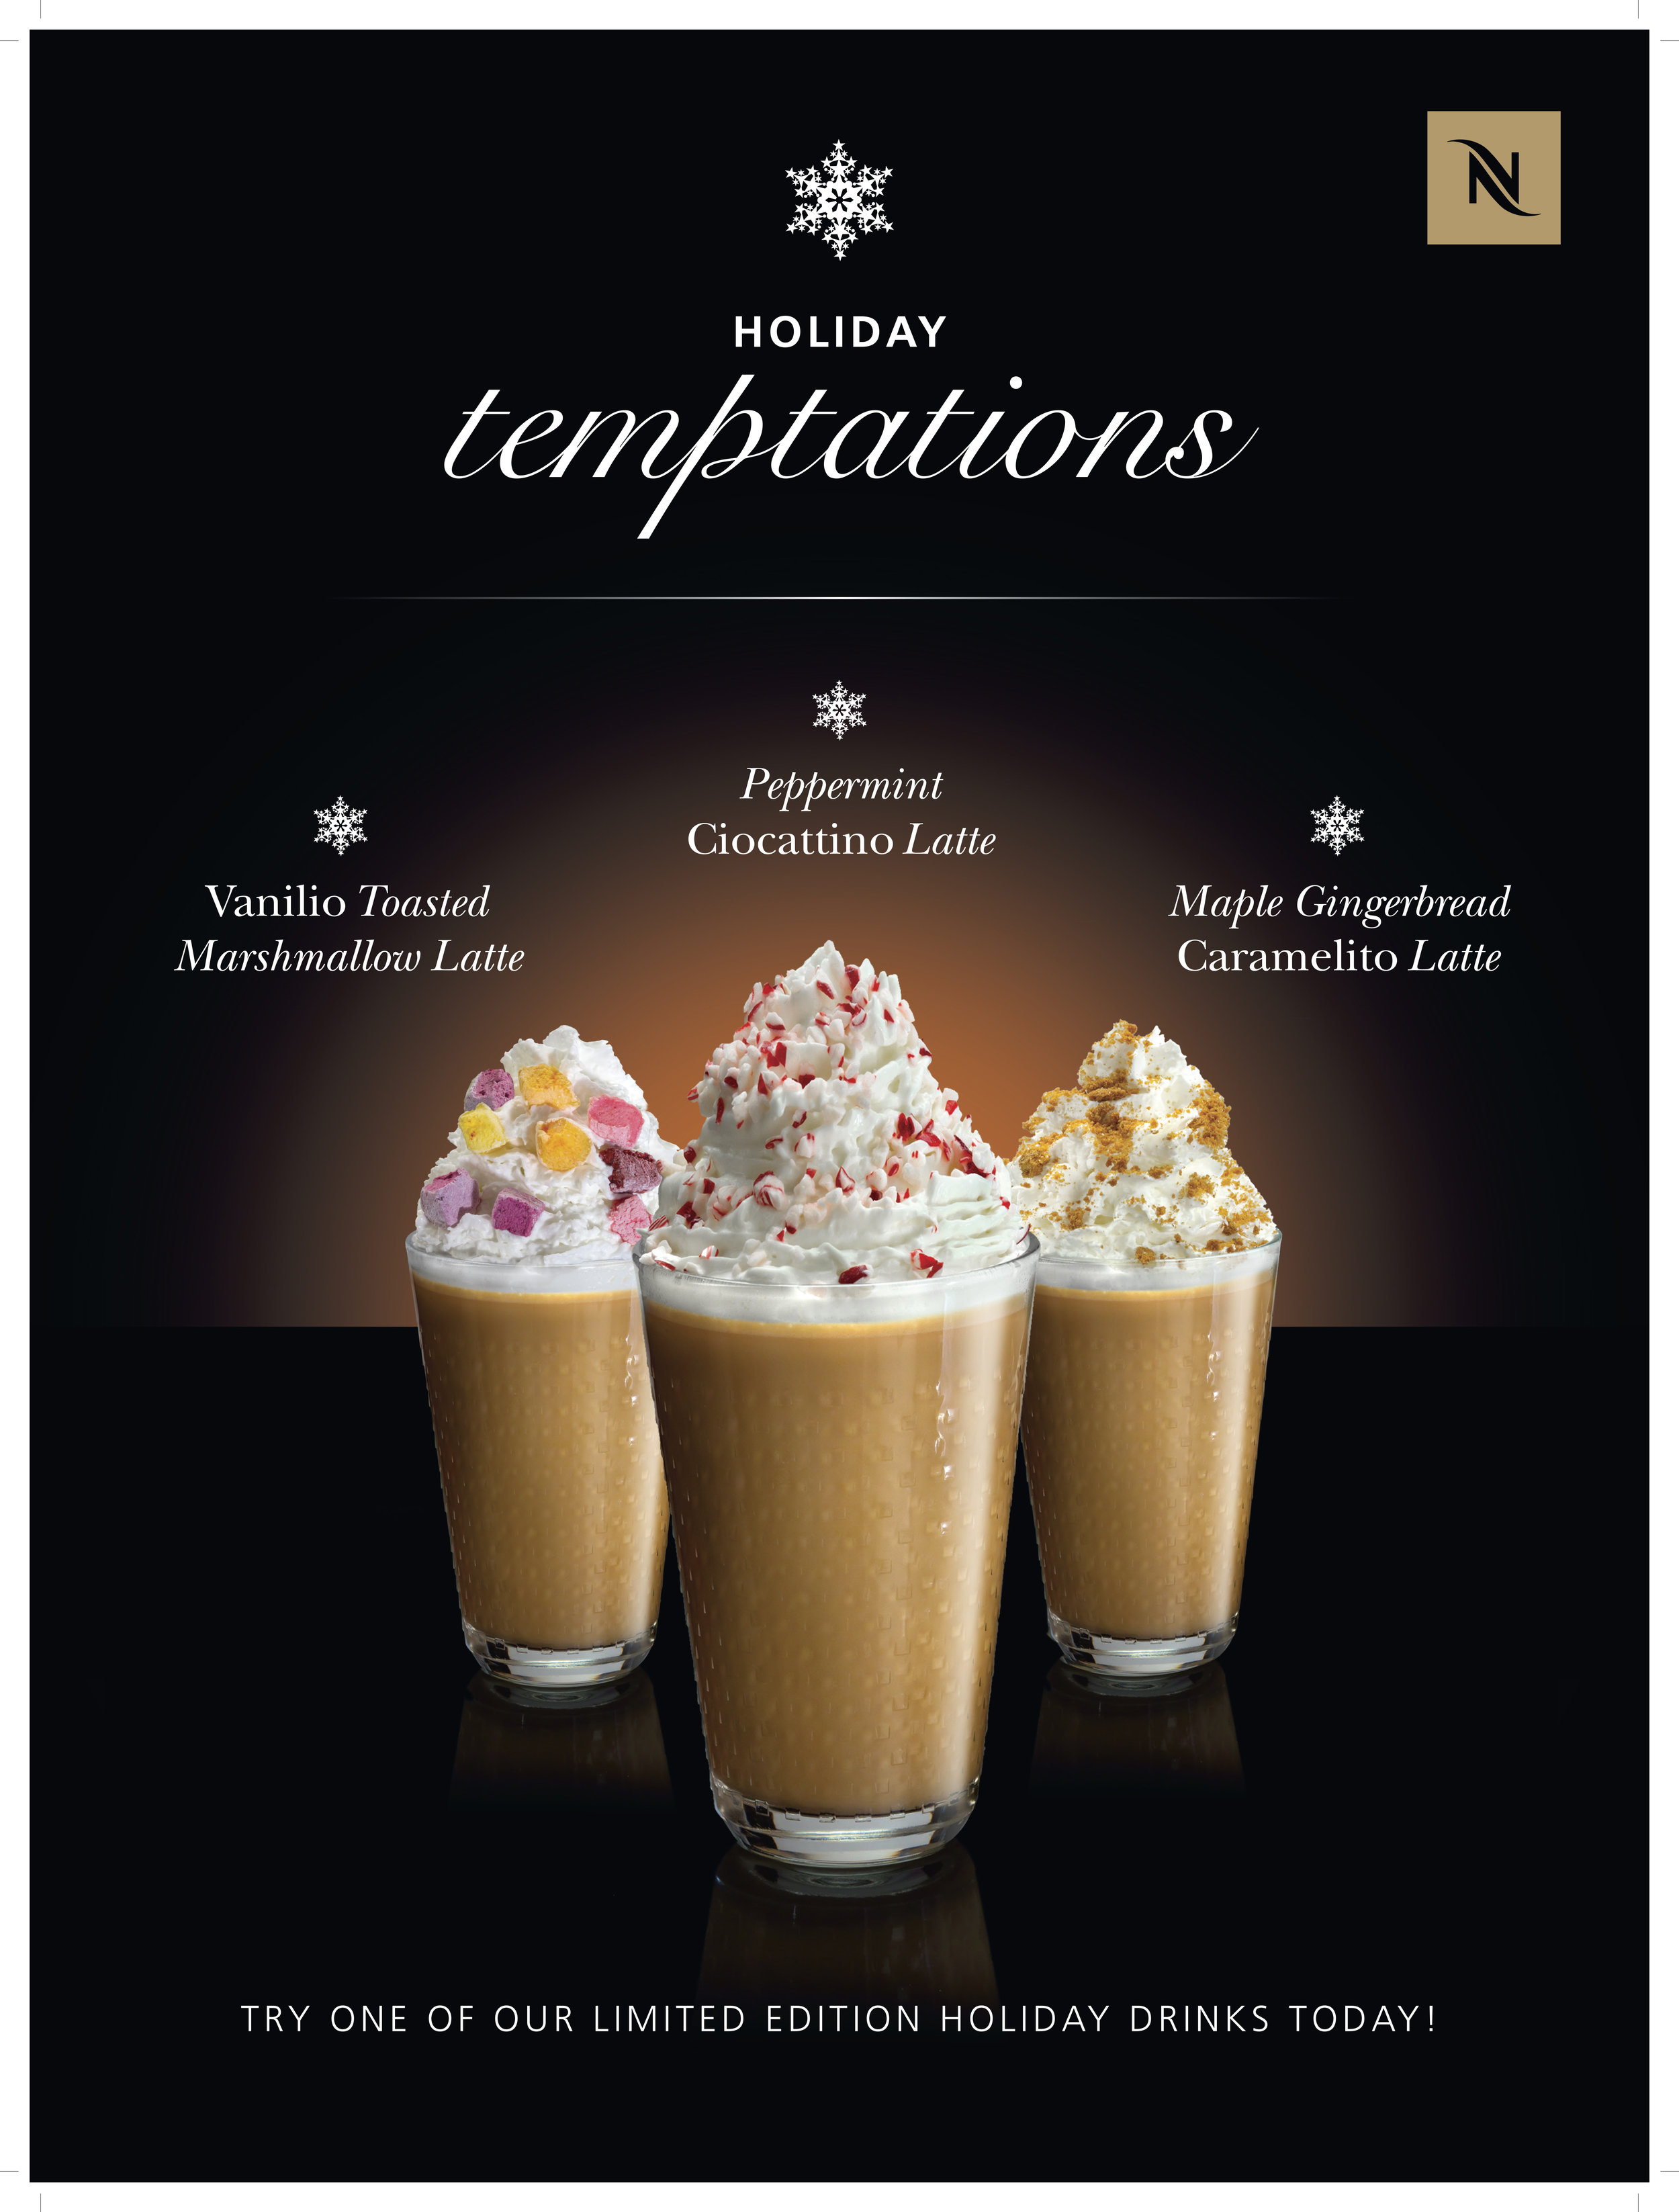 Nespresso Holiday Drink Poster.jpg